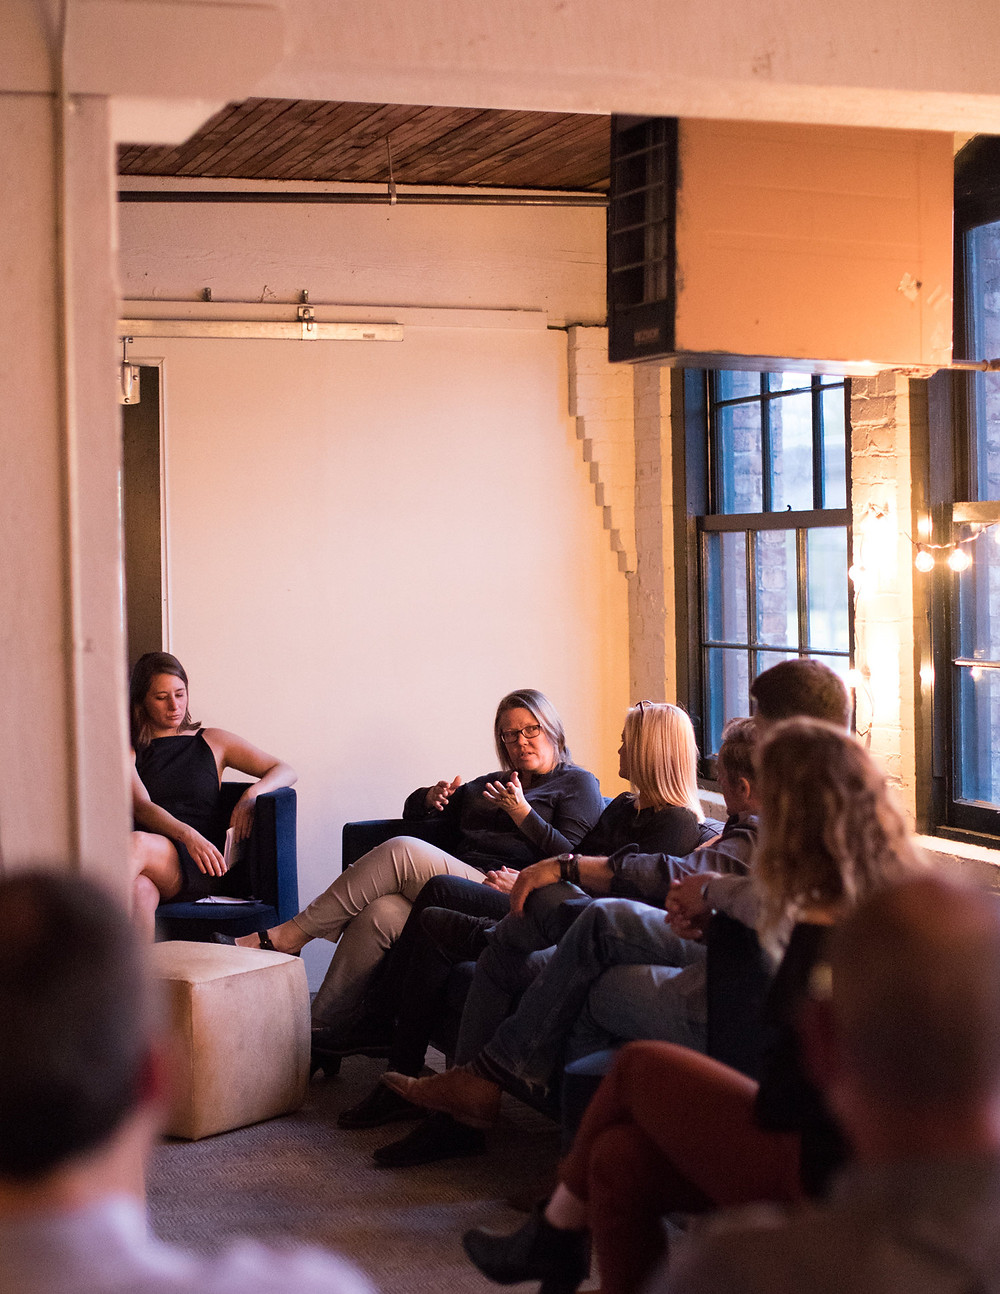 GRAY editor Rachel Gallaher moderates panel discussion with Kirsten Murray, FAIA, Chad Dale, Peter Steinbrueck, FAIA, Jenna Thornton, on blue sofa, loft style, Seattle office